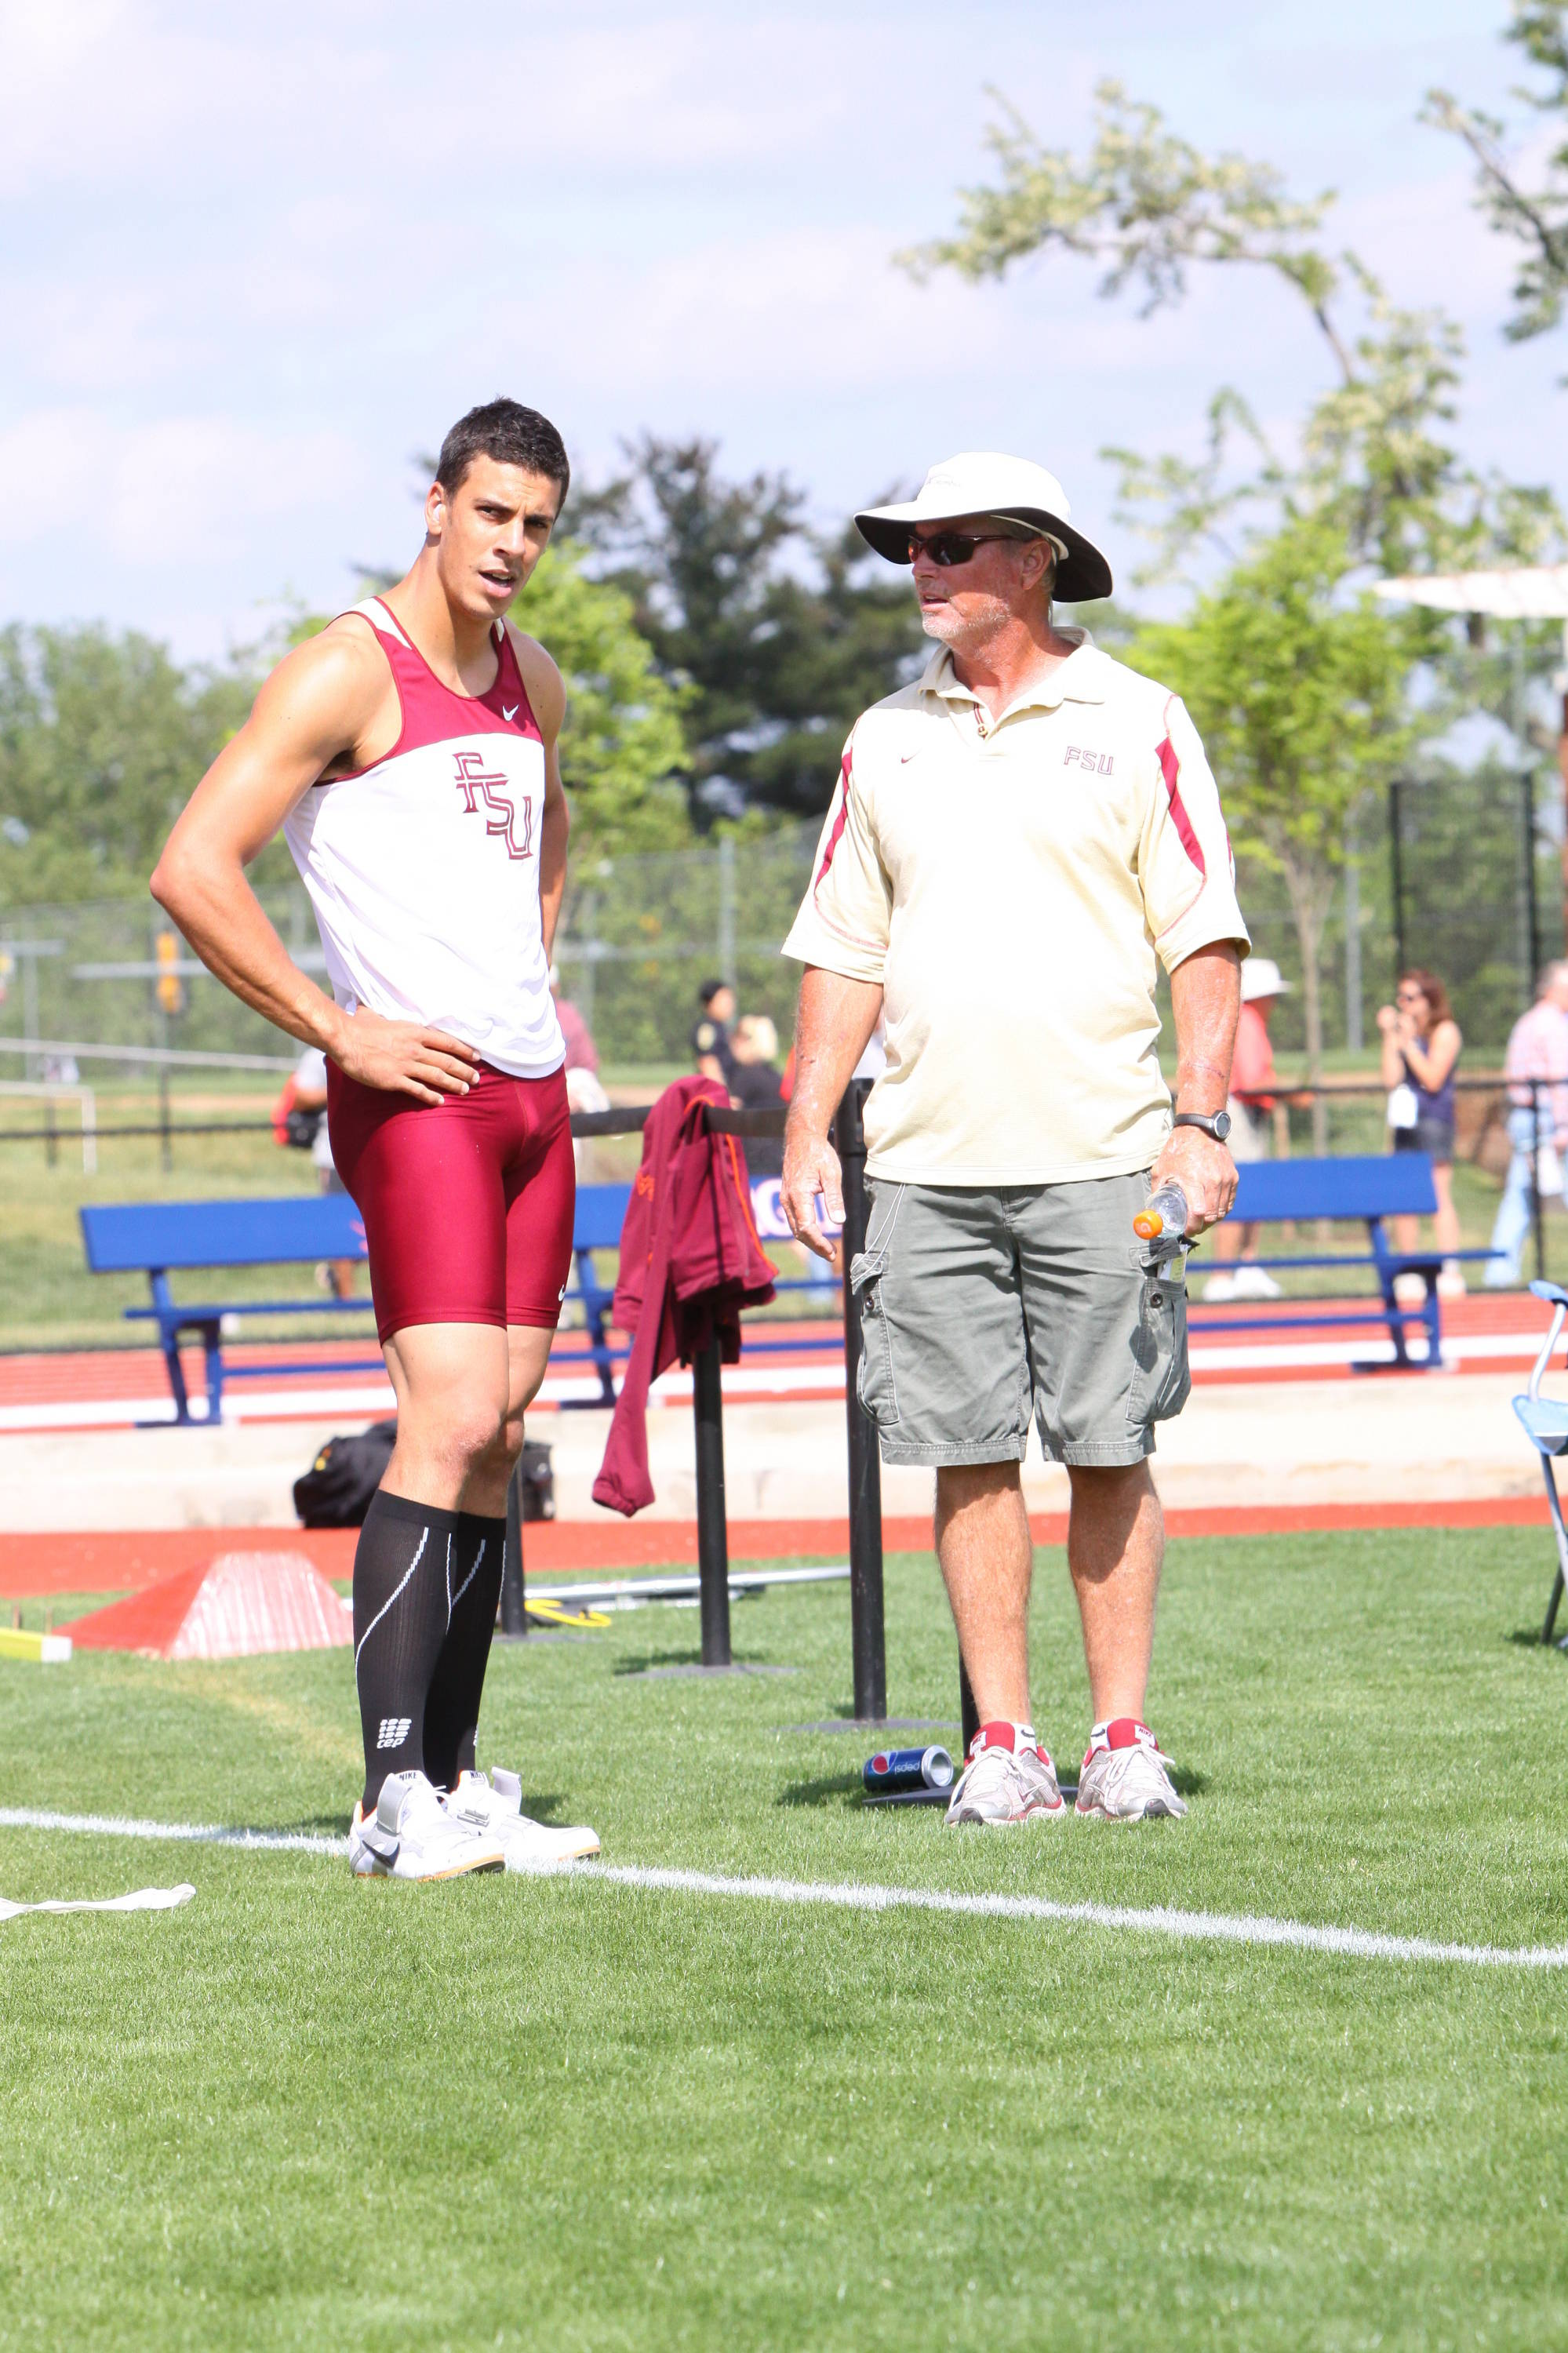 Dennis Nobles, FSU's multi-event, jumps and vaults coach, shared a few pearls of wisdom during the pole vault competition with his most accomplished decathlete in three decades of coaching.